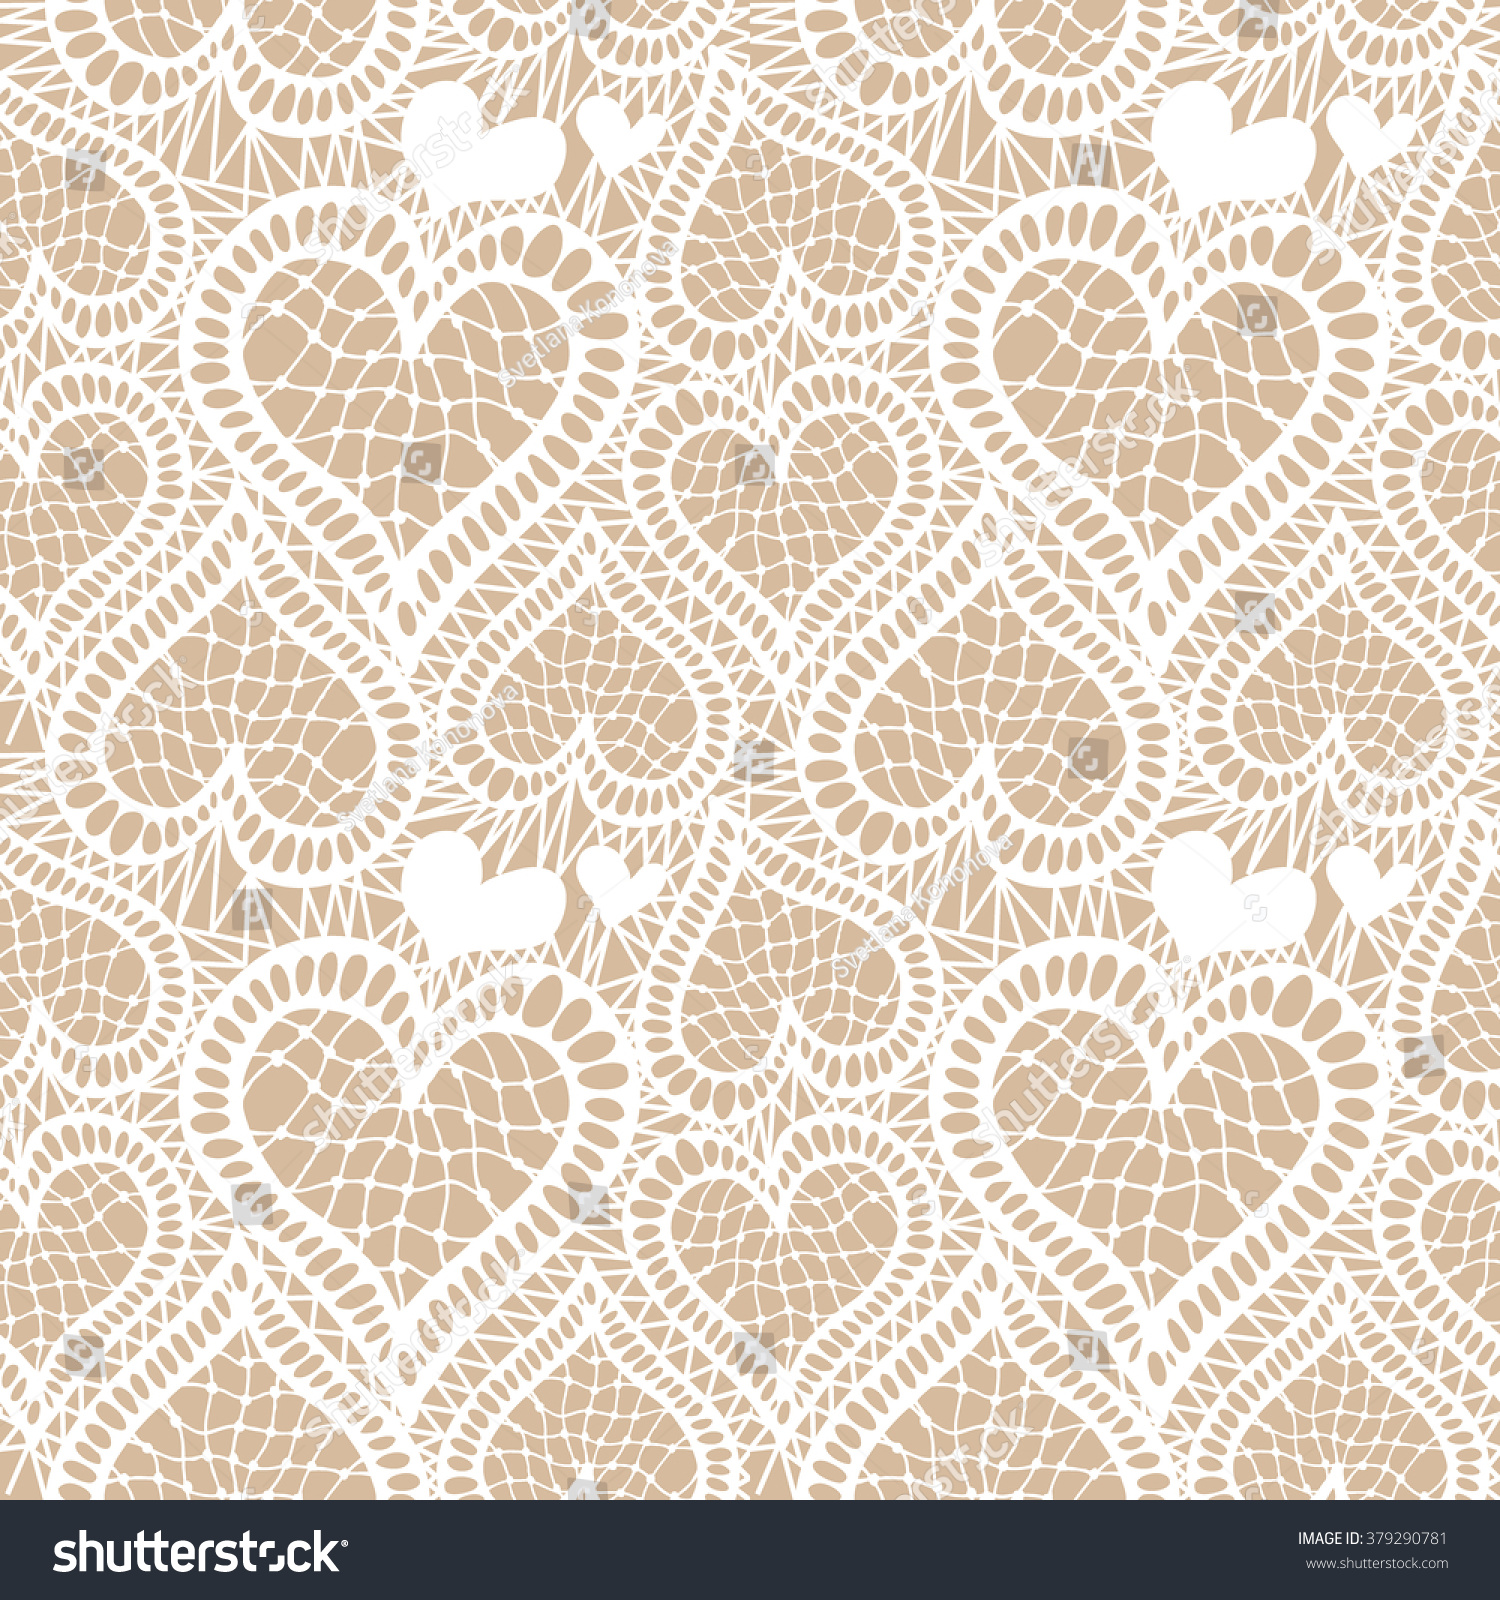 Lace Seamless Hand Drawn Vector Pattern Stock Vector 379290781 ...